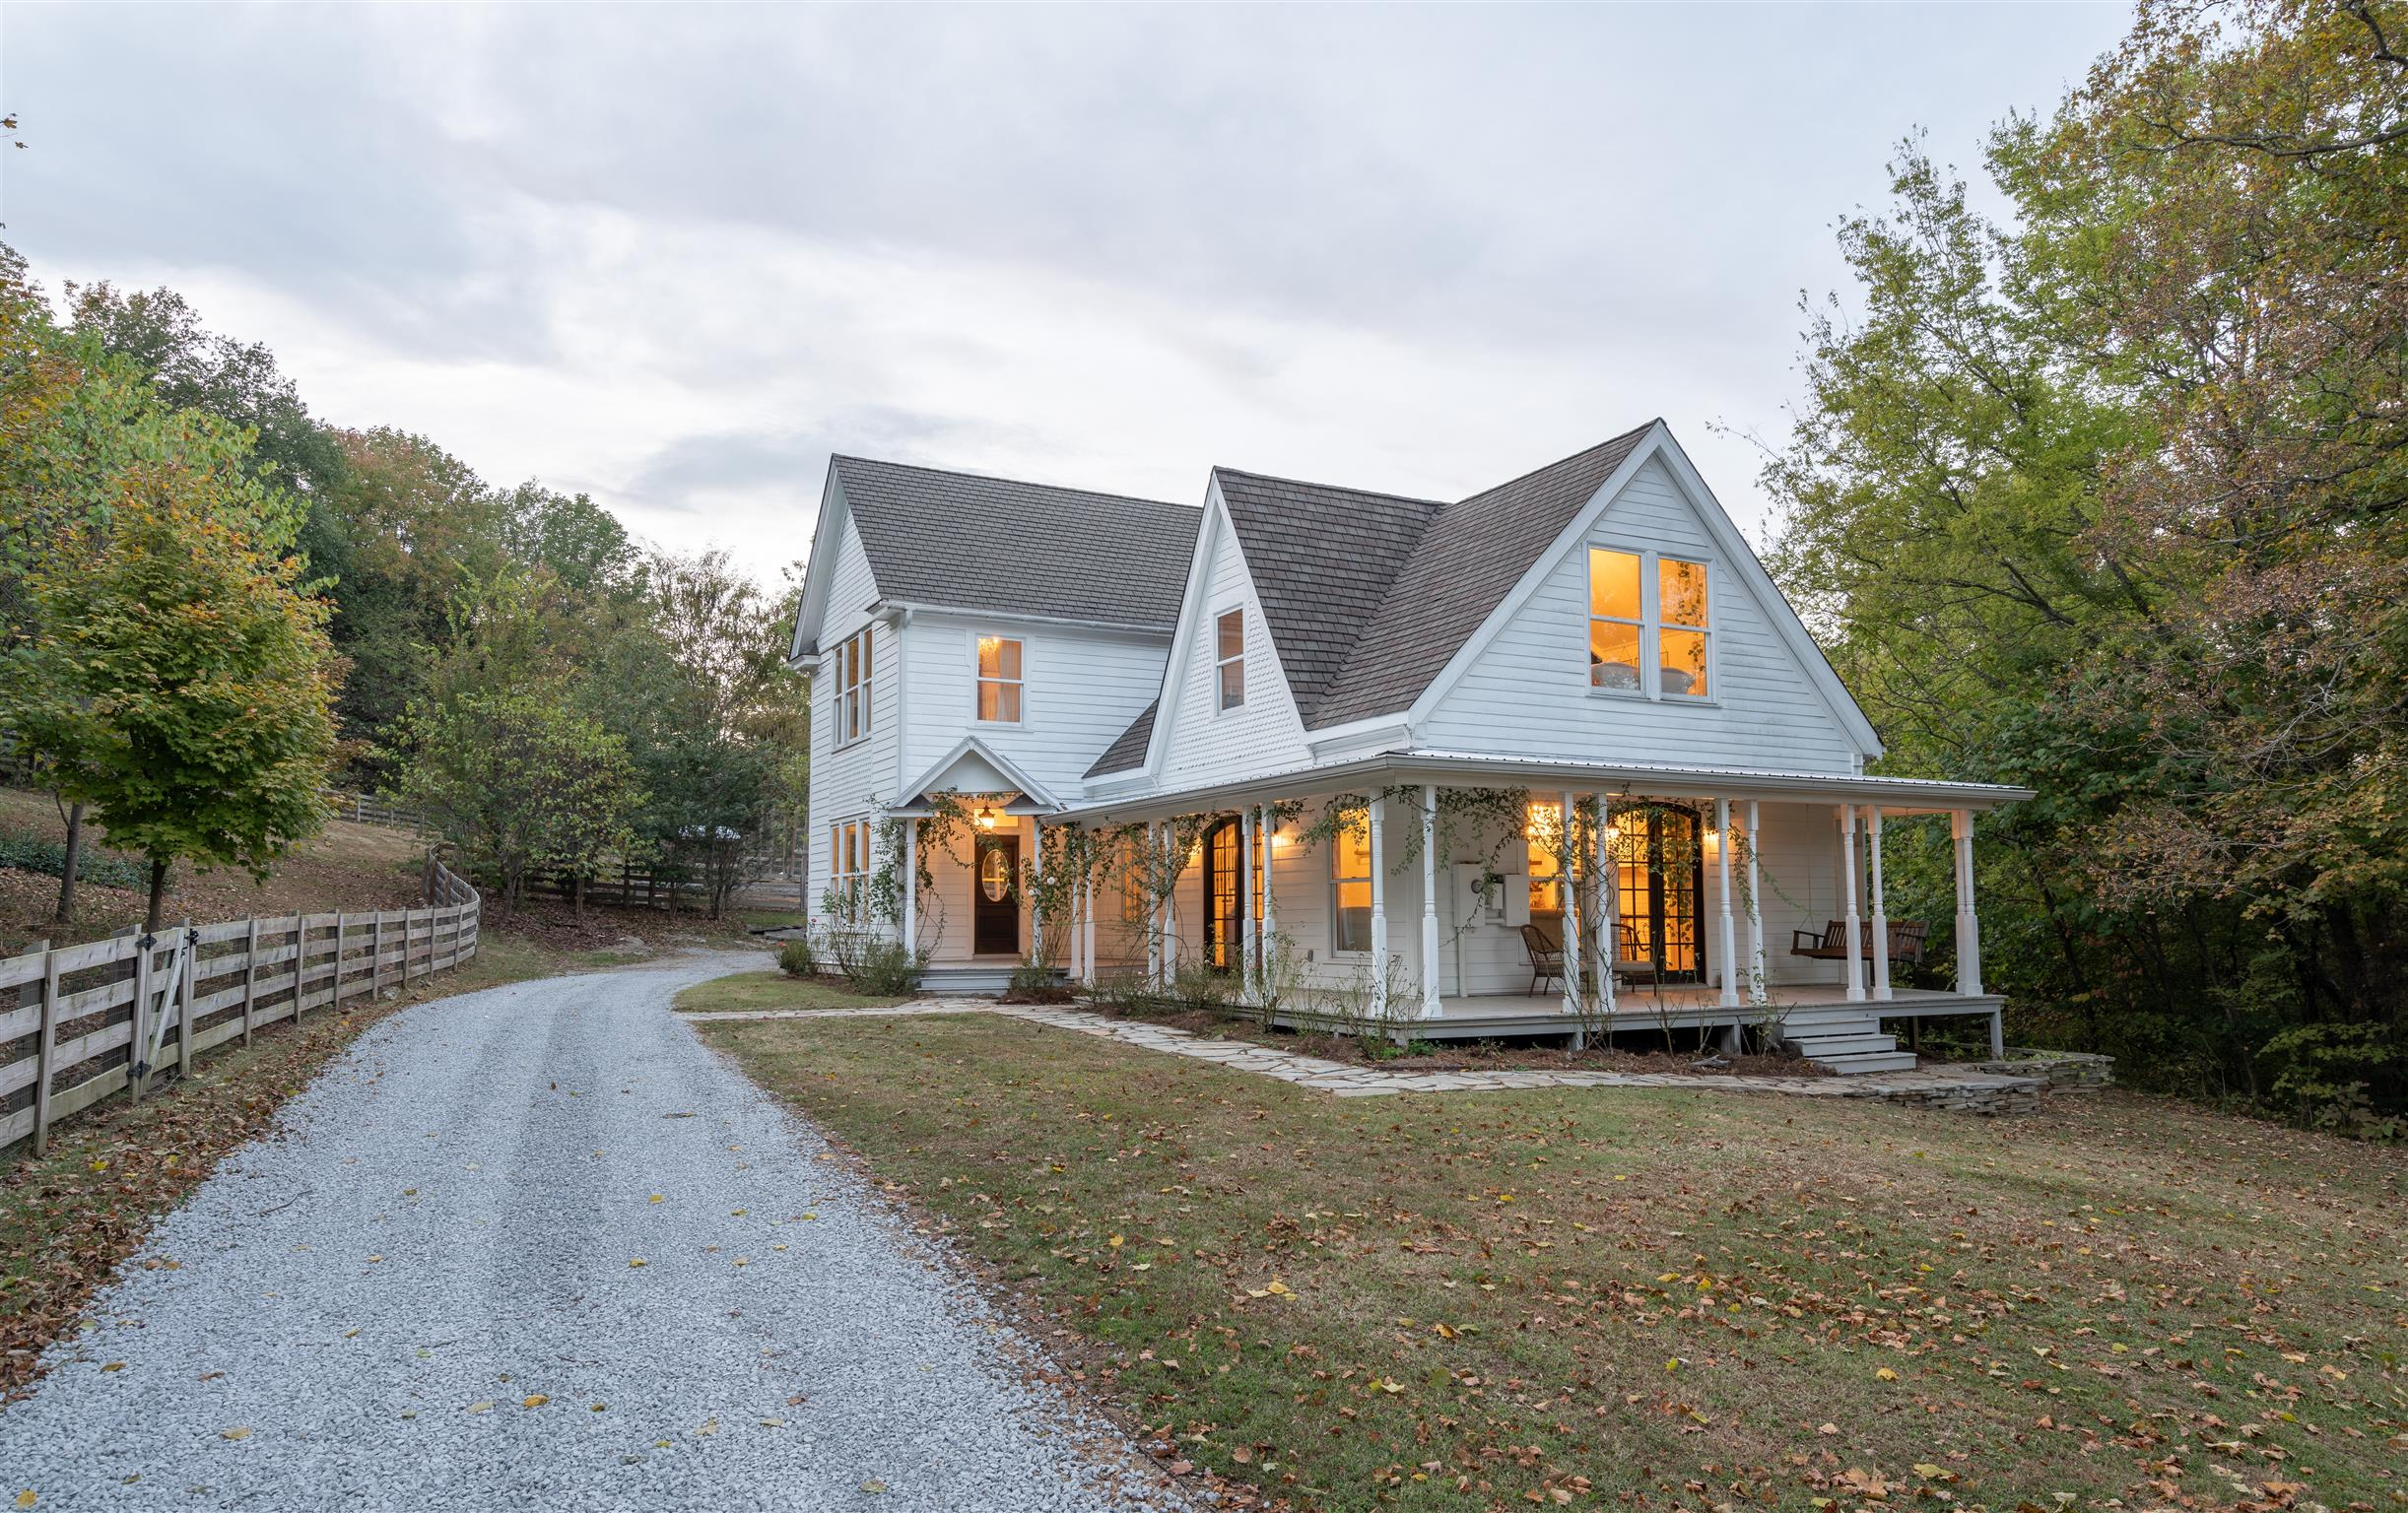 Dreamy Victorian Farmhouse in the hills of Tennessee with organic garden & land for your small herds. Owners purchased land & unfinished farmhouse open to the studs and built it out in 2014! This dream home and land features Wraparound porches, Antique Doors, Huge Gourmet Kitchen, Graze Pasteur and Open Meadows, Barn, Schoolhouse/Office, Tiny House   great for guests or Airbnb, Organic Garden with Garden Shed, Orchard full of various Fruit Trees, Rare Breed Chickens, Peacocks, Beehives and More!